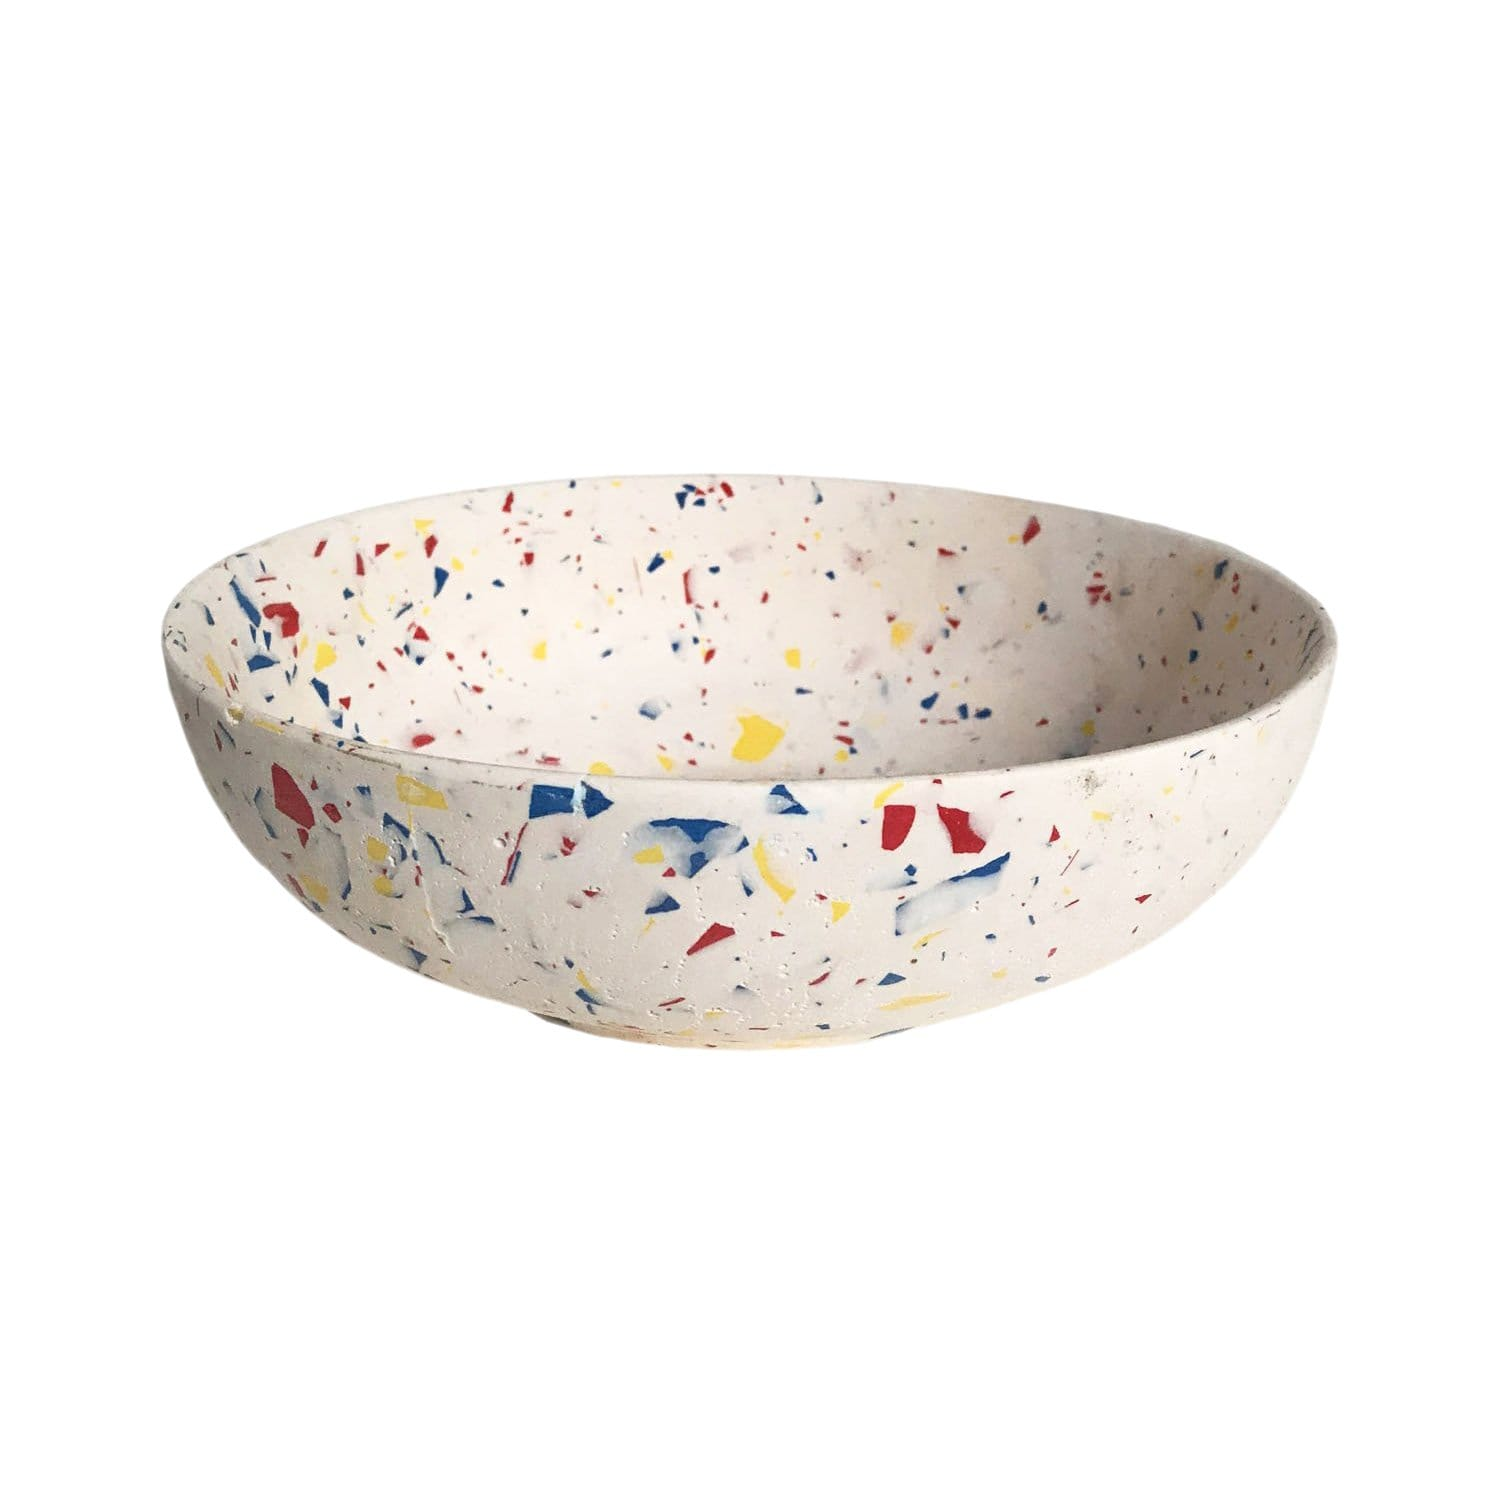 Les Pieds de Biche Kitchen Organization White Terrazzo Concrete Bowl